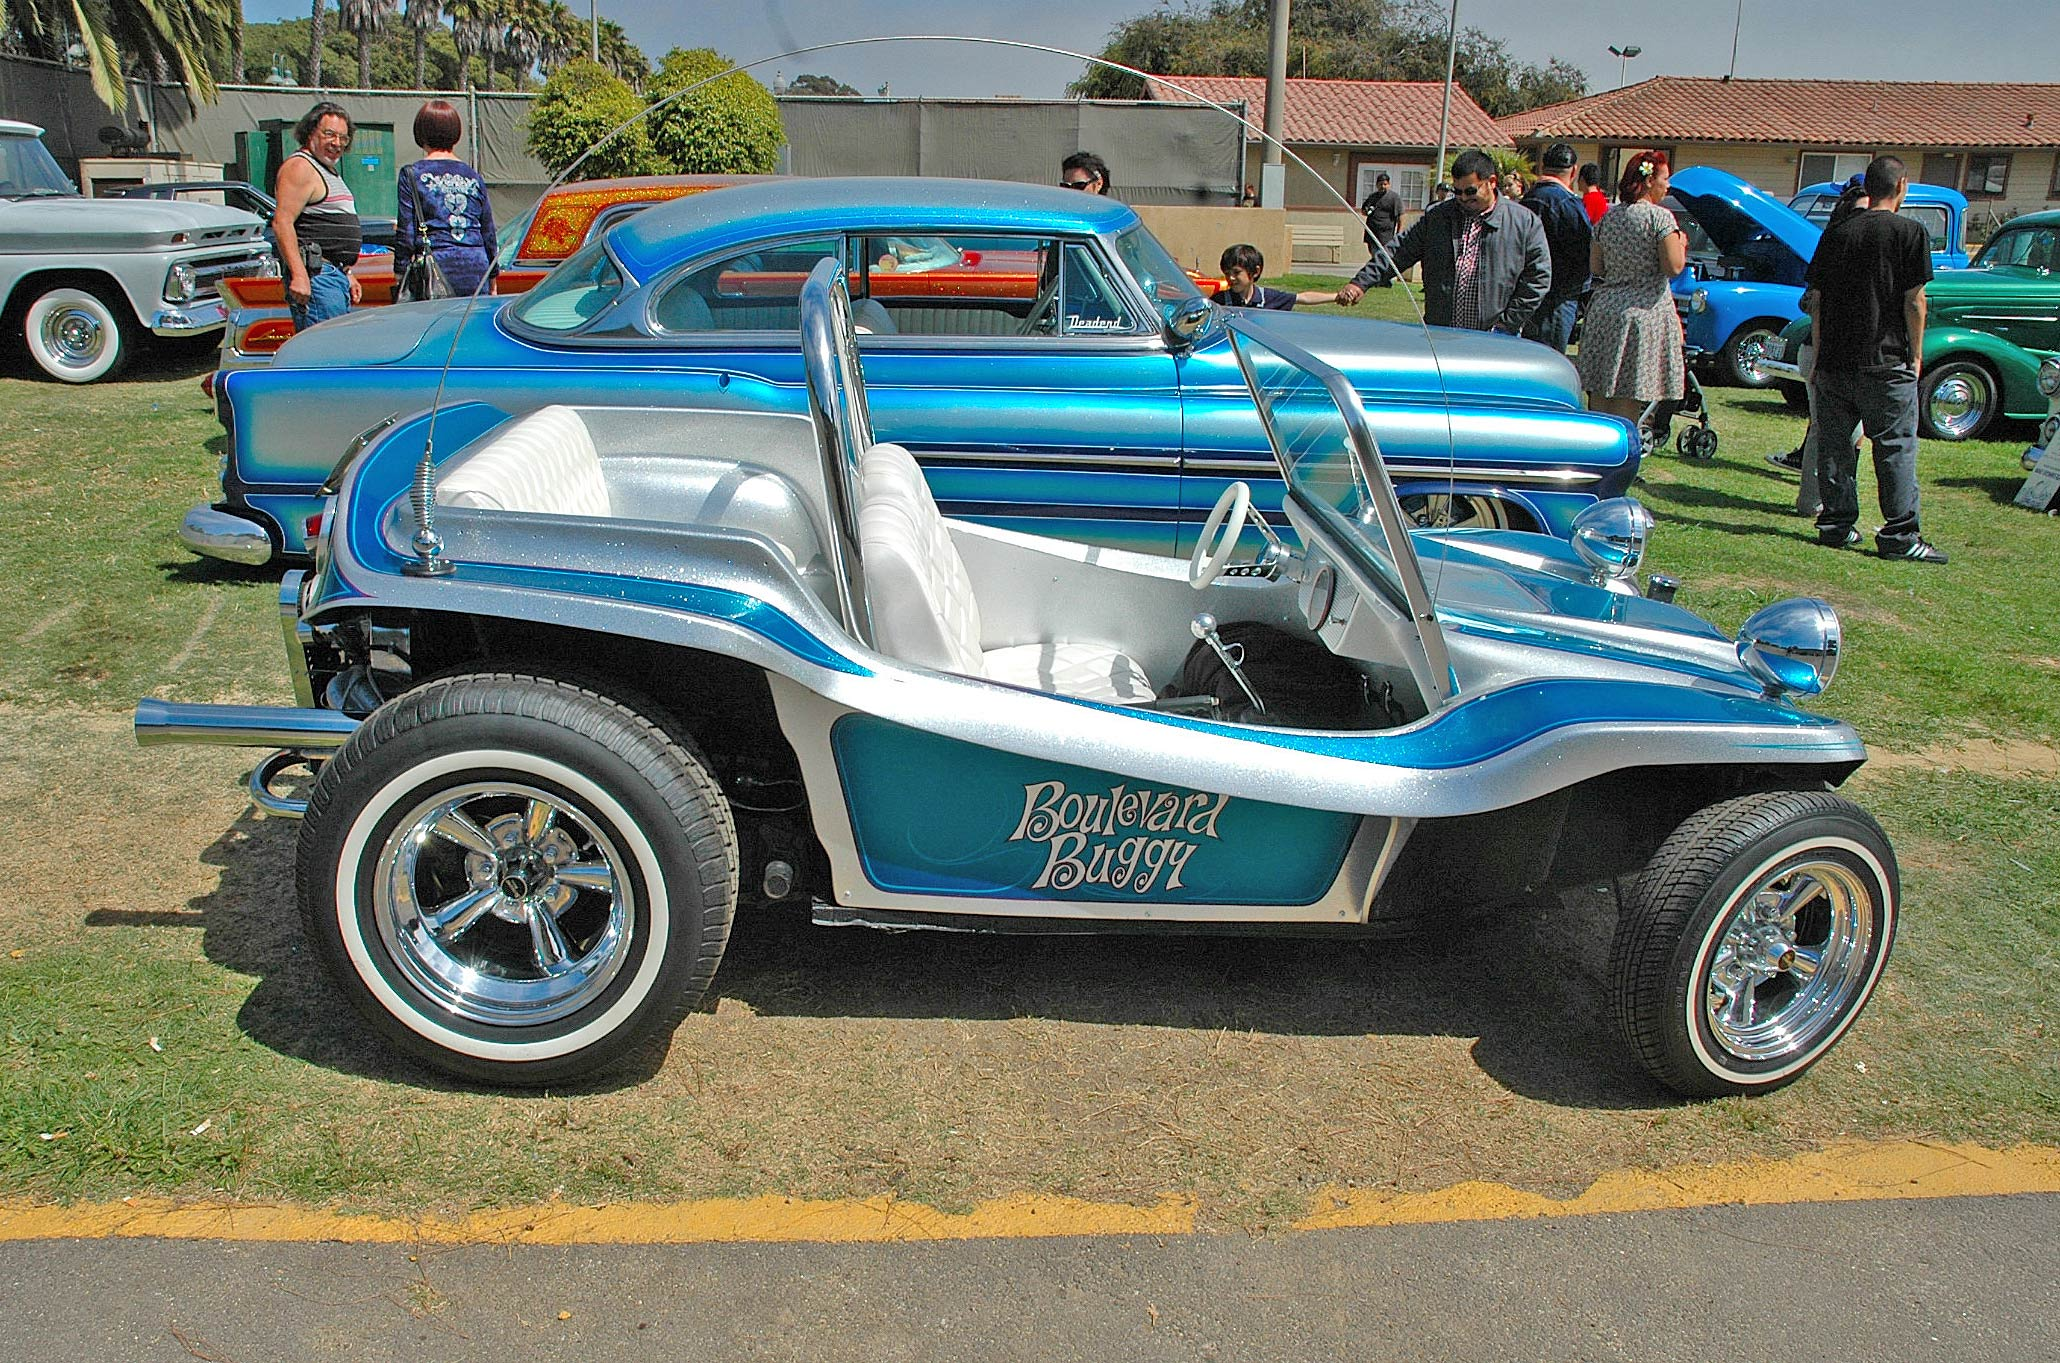 Kit Cars To Build Yourself >> 1000+ images about Dune Buggy on Pinterest | Volkswagen, Surf and Buses